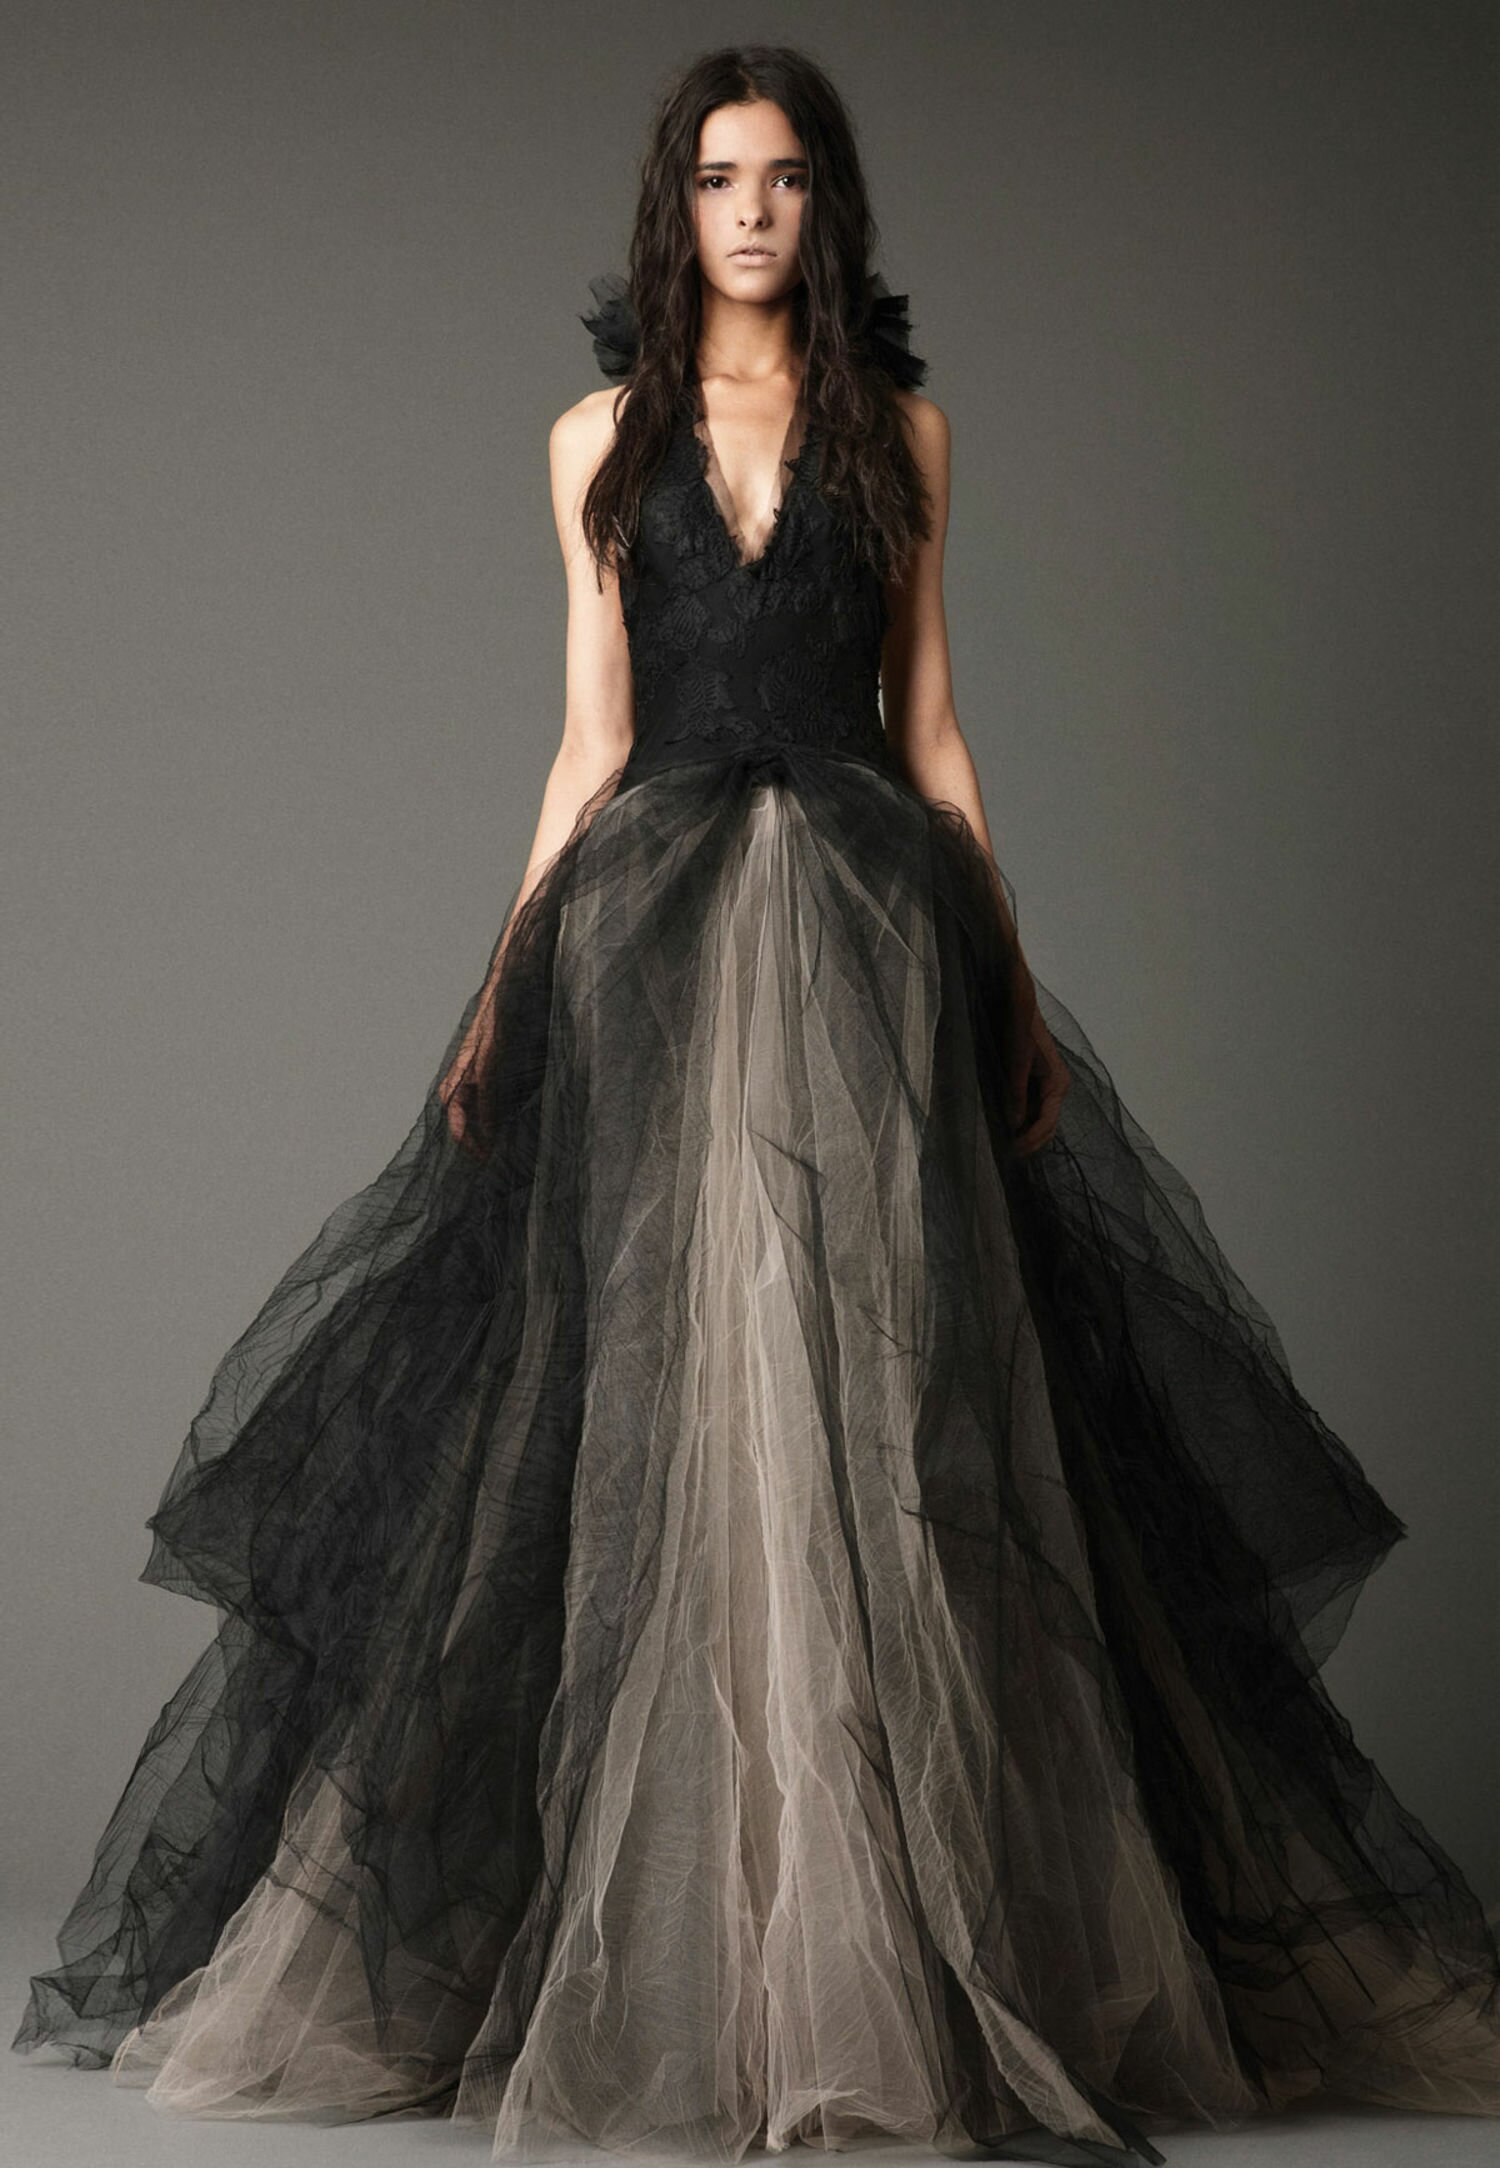 Black wedding dresses Vera Wang: Pictures ideas, Guide to buying ...